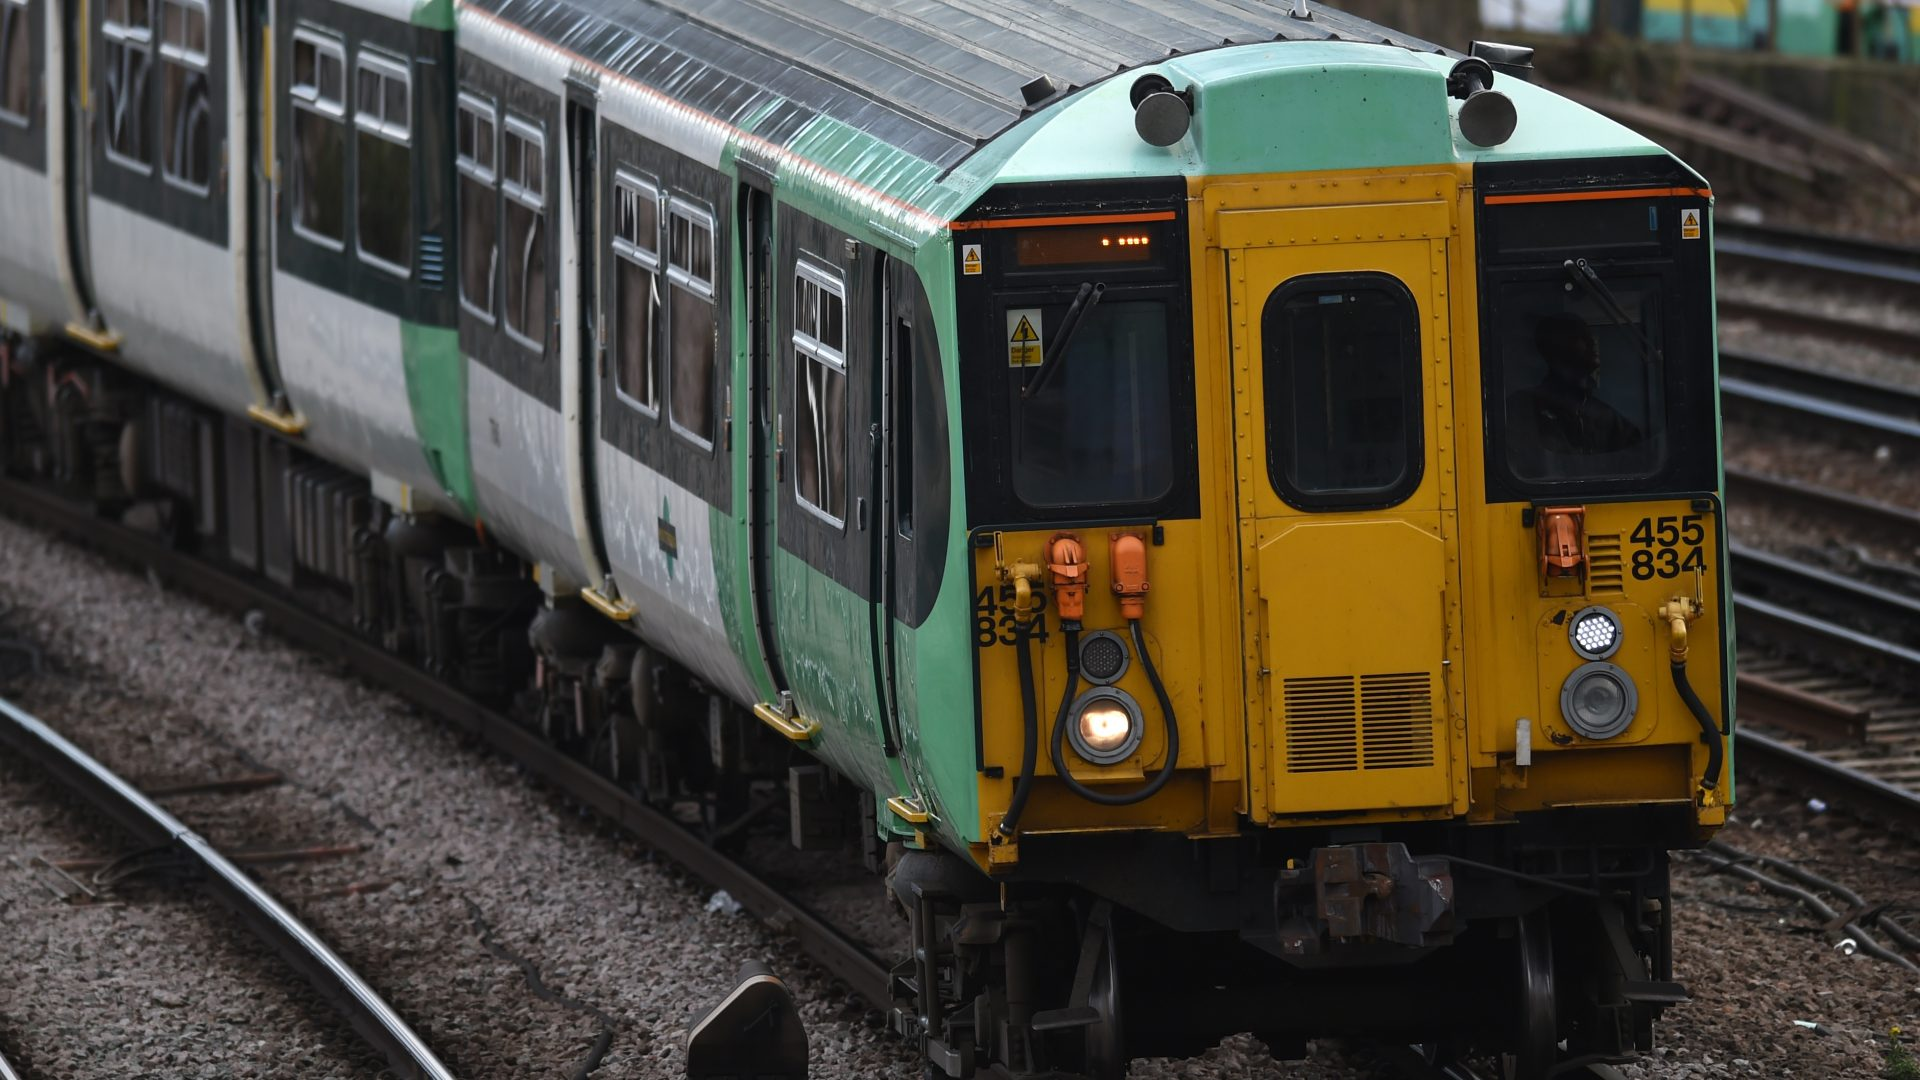 A number of Southern trains have been cancelled this morning because trains couldn't leave the depot